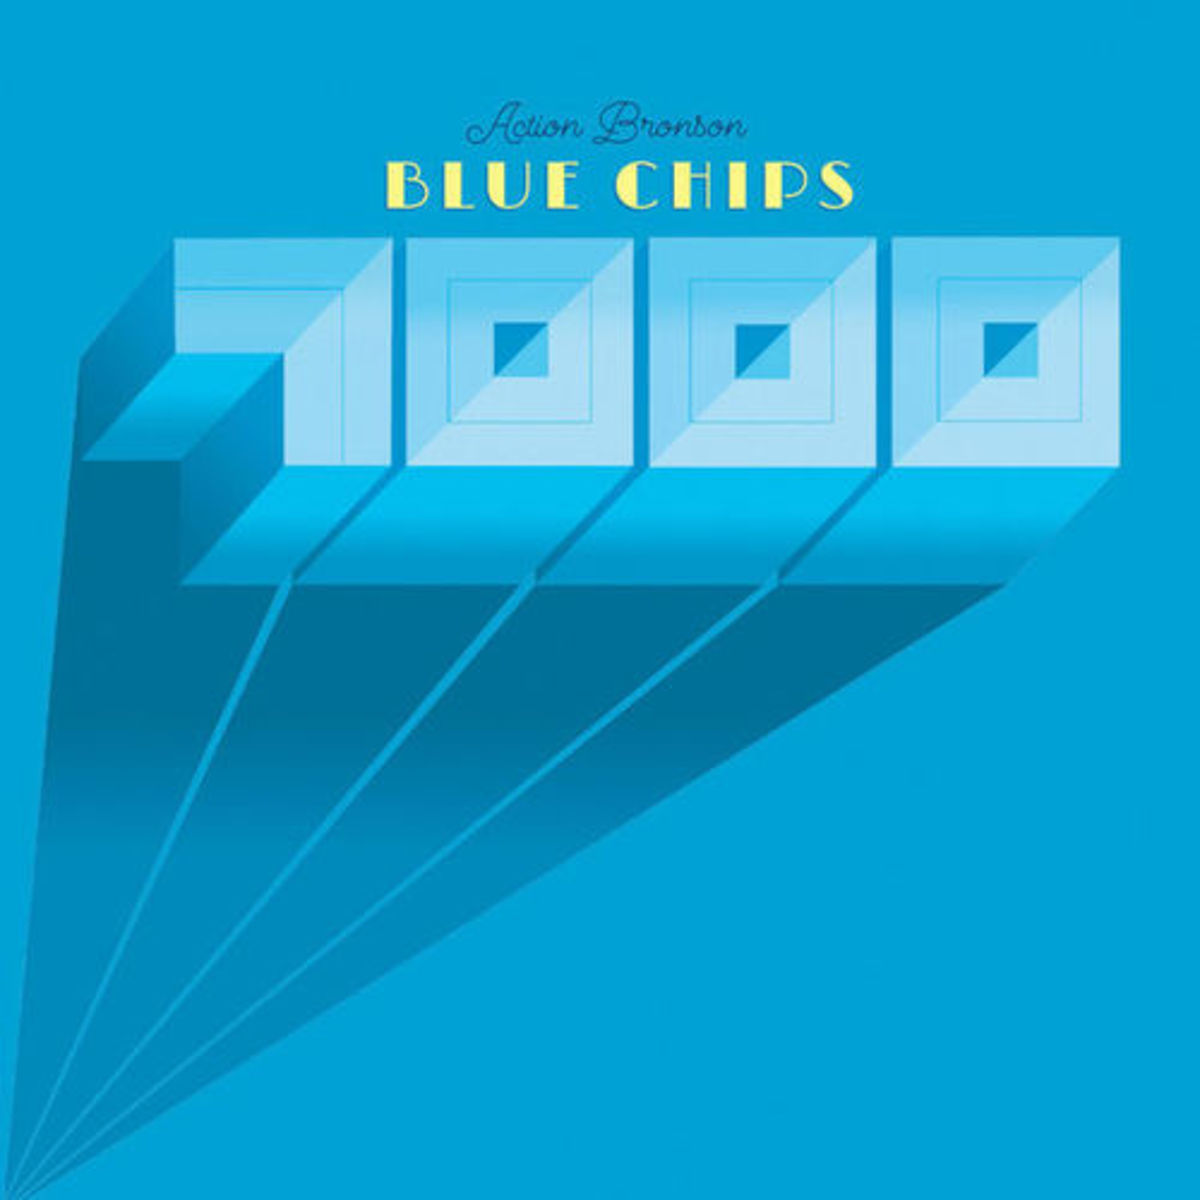 action-bronson-blue-chips-7000.jpg